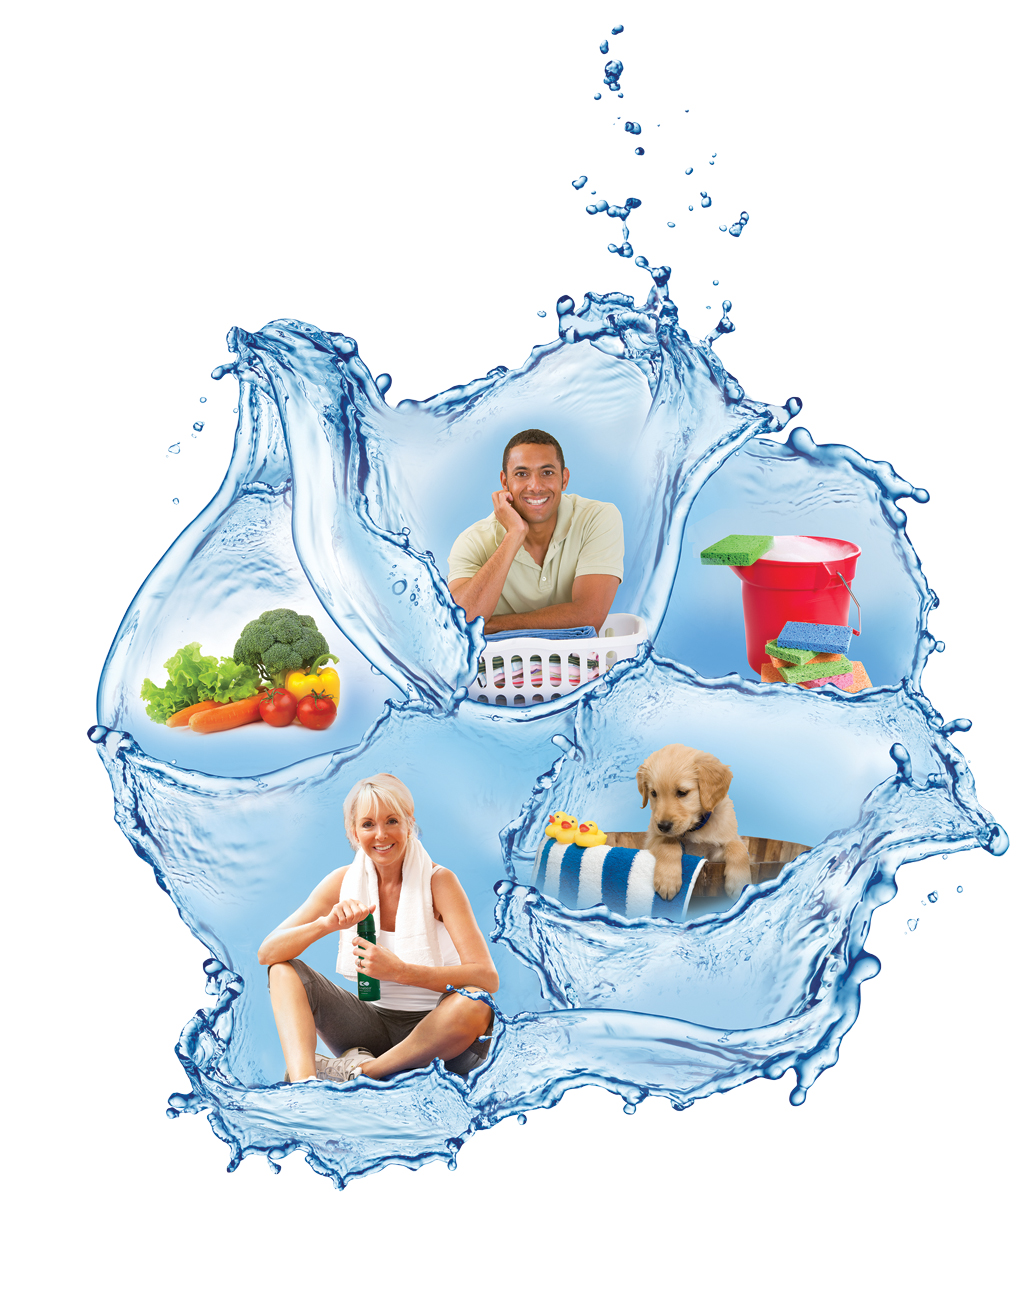 Kinetico Water Softeners & Drinking Water Systems - King Controls offers and installs a full line of Kinetico water softeners. The perfect match of quality product and professional service.